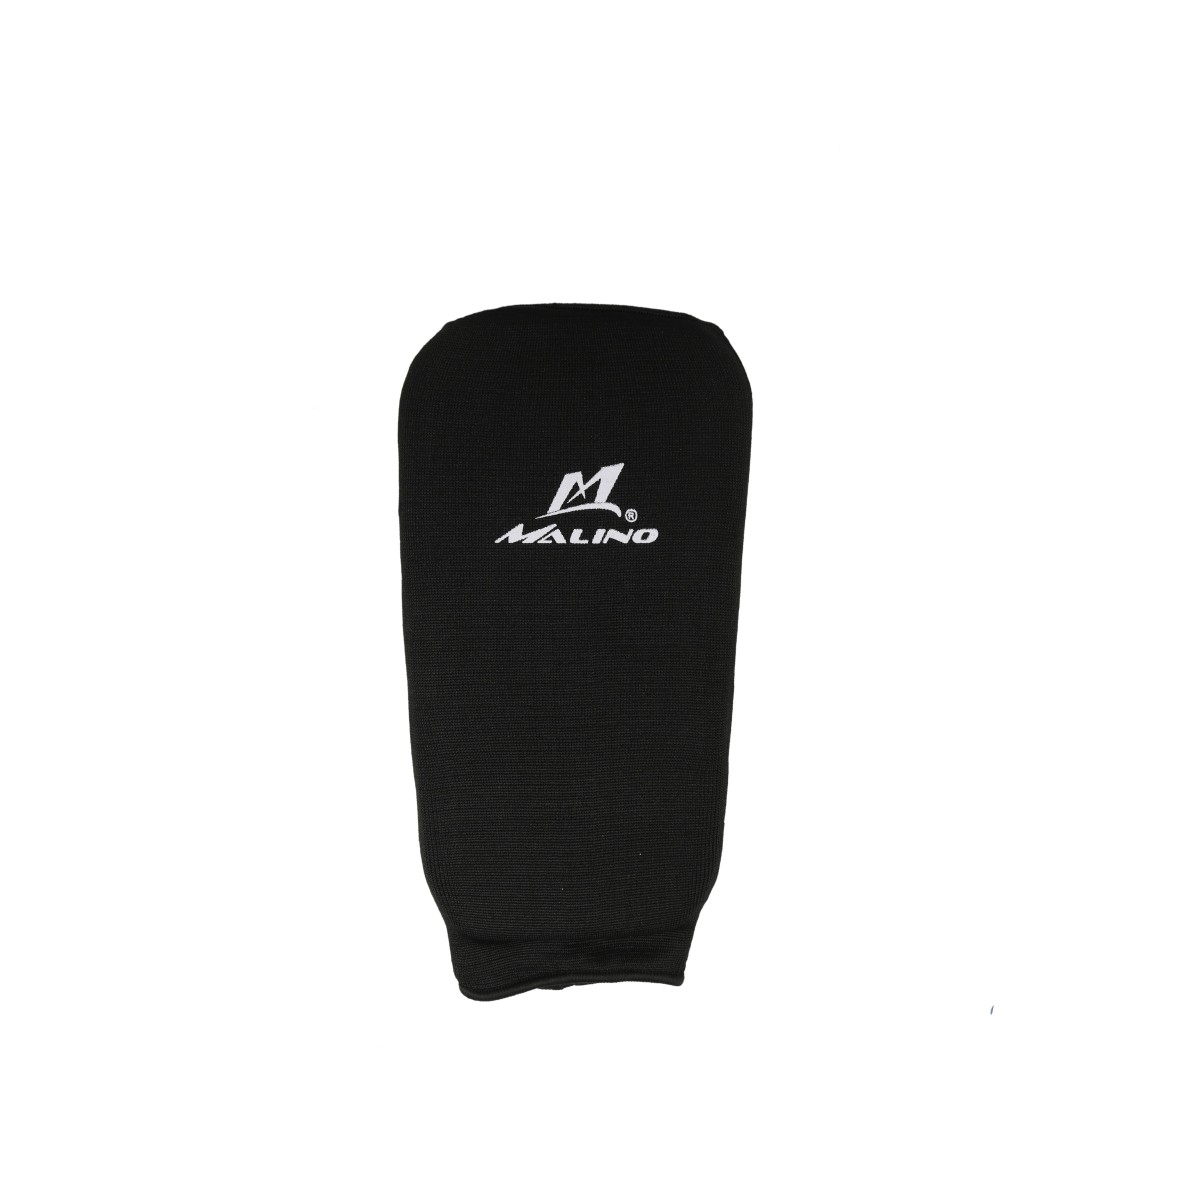 Malino Hosiery Padded Elasticated Black Shin Pad